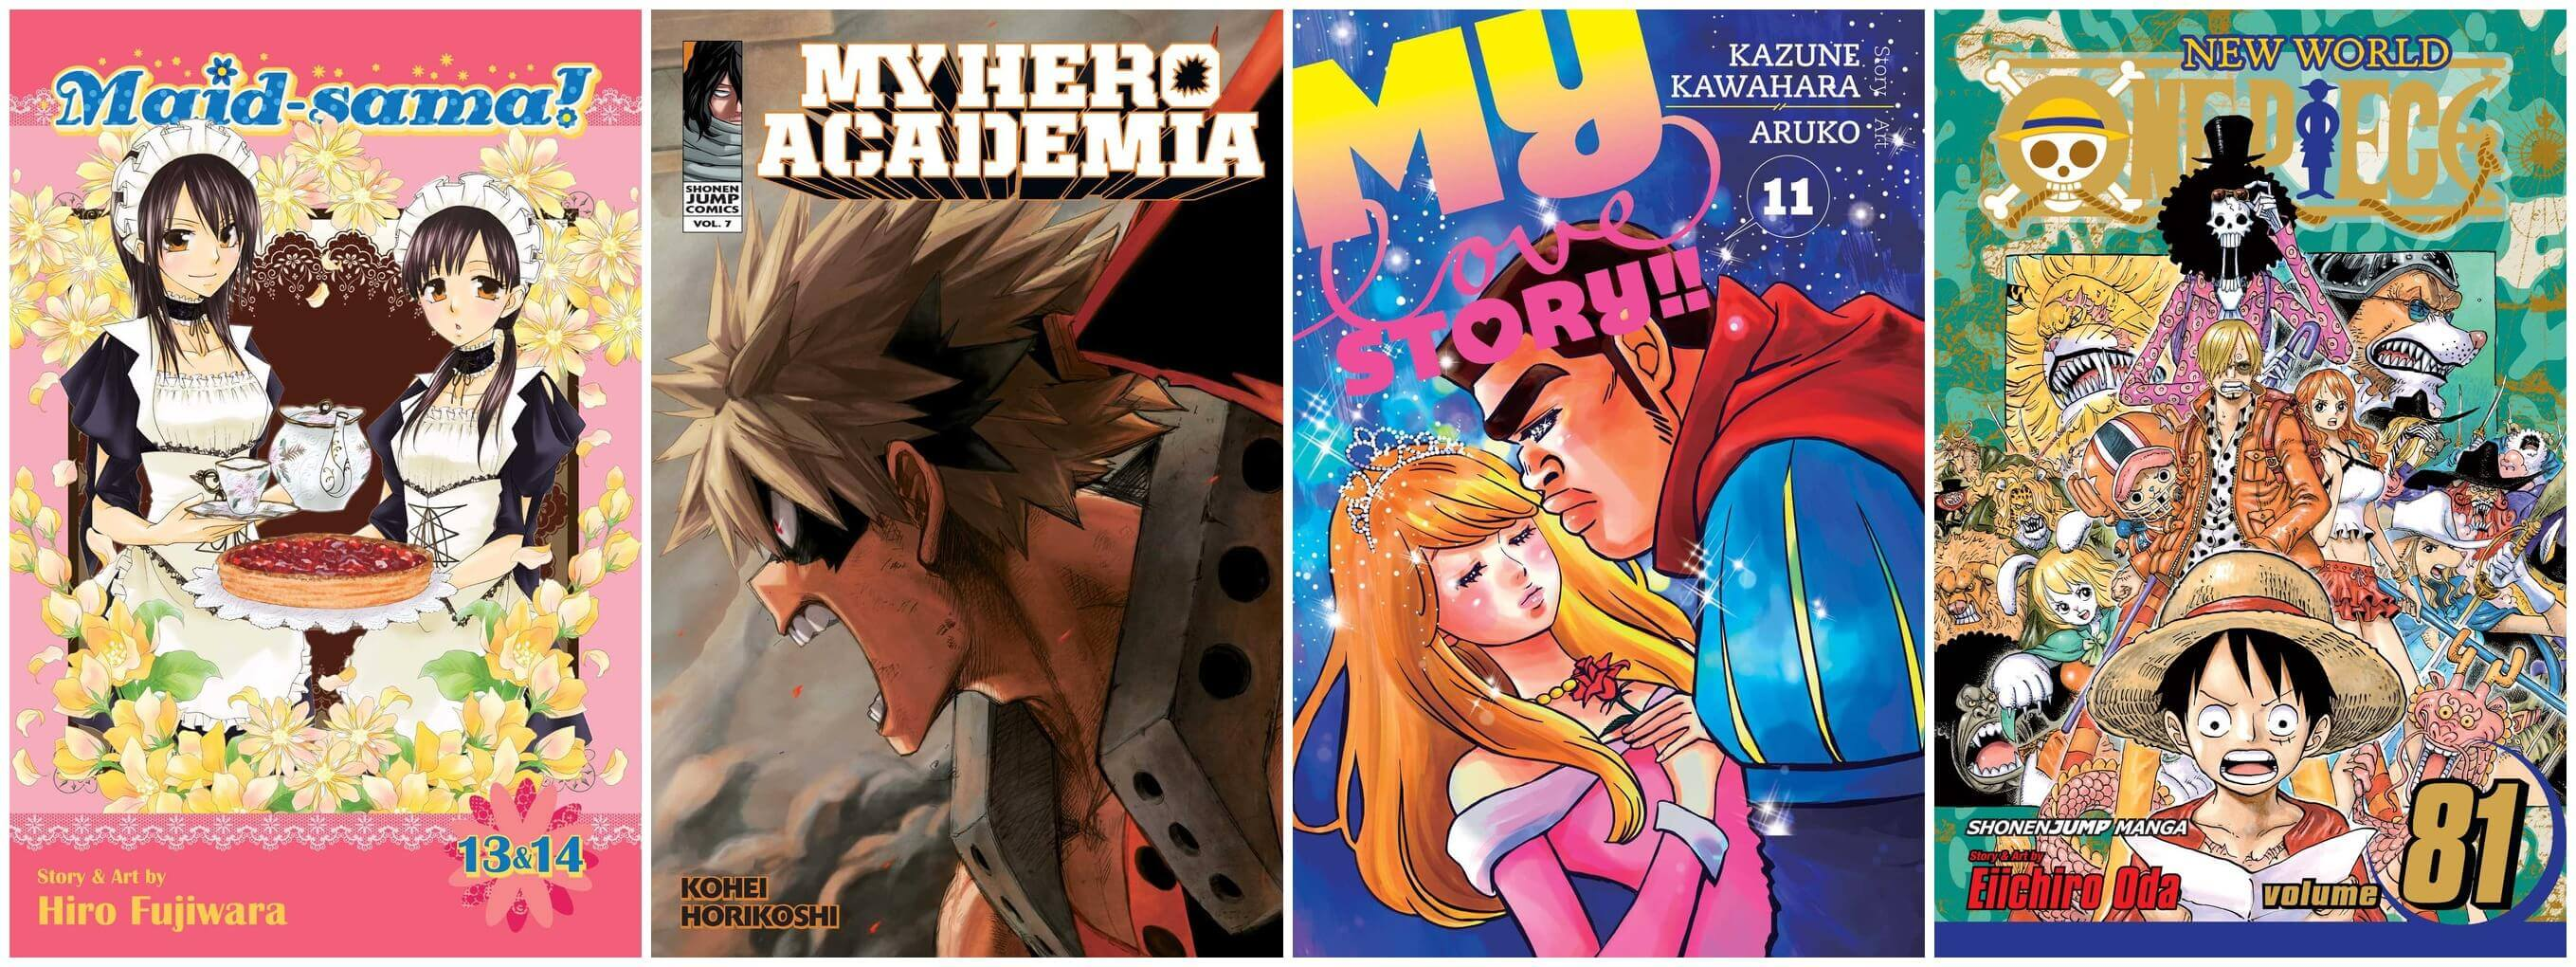 February 2017 Manga Releases Covers for Maid-sama, My Hero Academia, My Love Story, and One Piece.